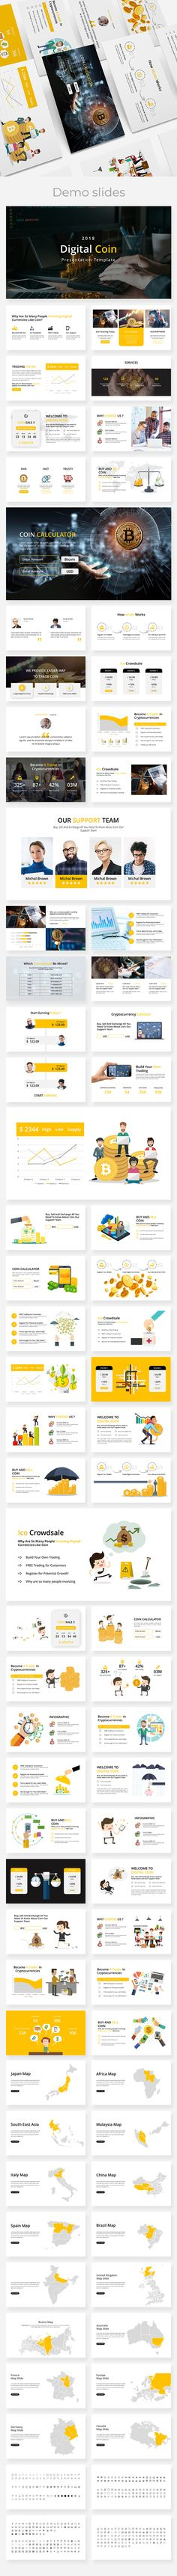 Digital Coin - Business Google Slide Template - Google Slides Presentation Templates